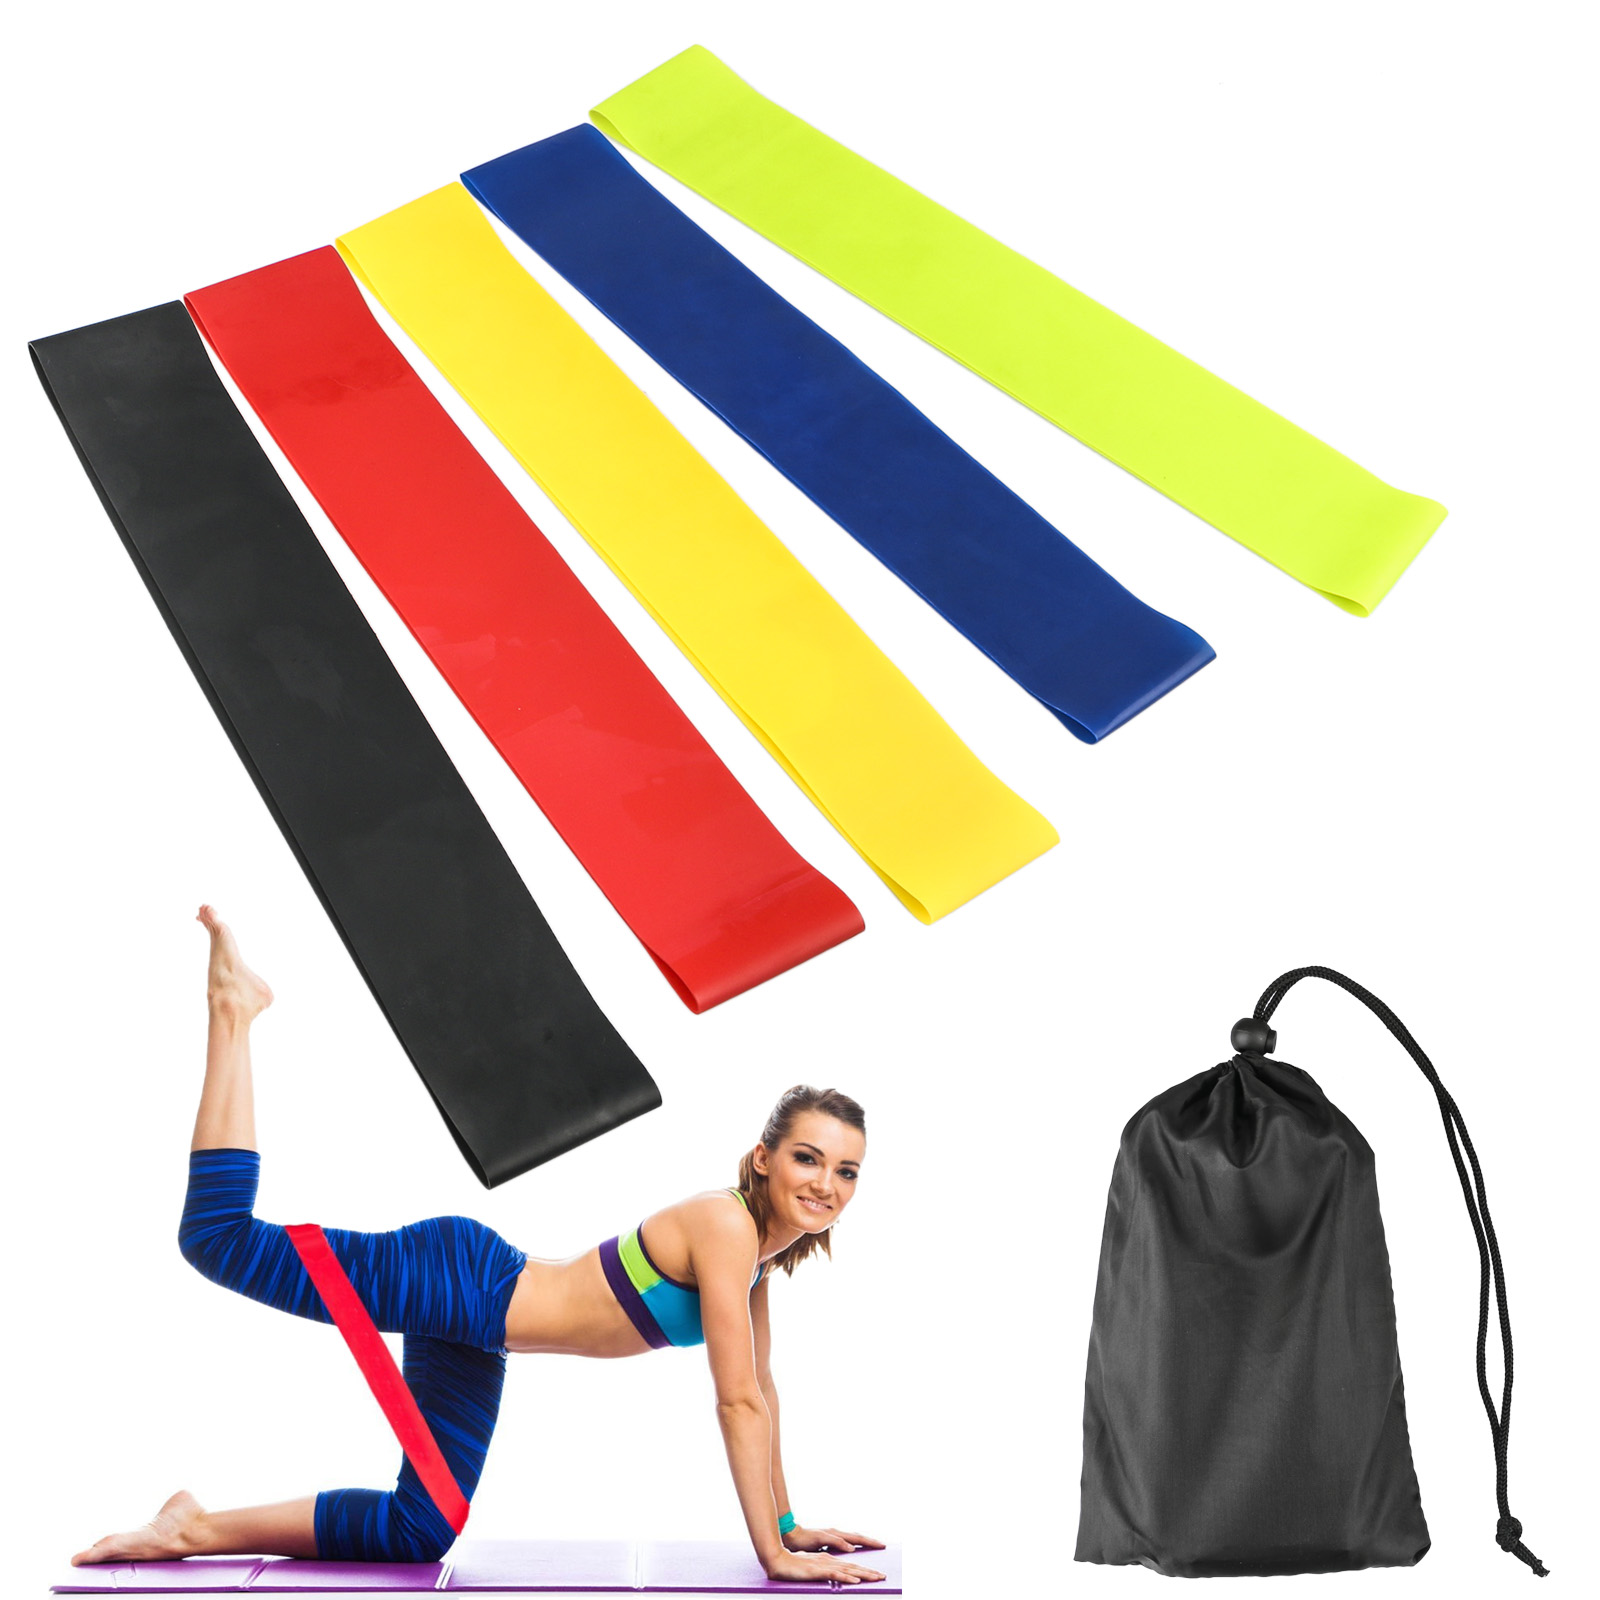 TSV 5pcs Resistance Loop Exercise Bands, 12-inch Workout Stretch Bands for Legs Butt Glutes Yoga CrossFit Home Fitness,... by